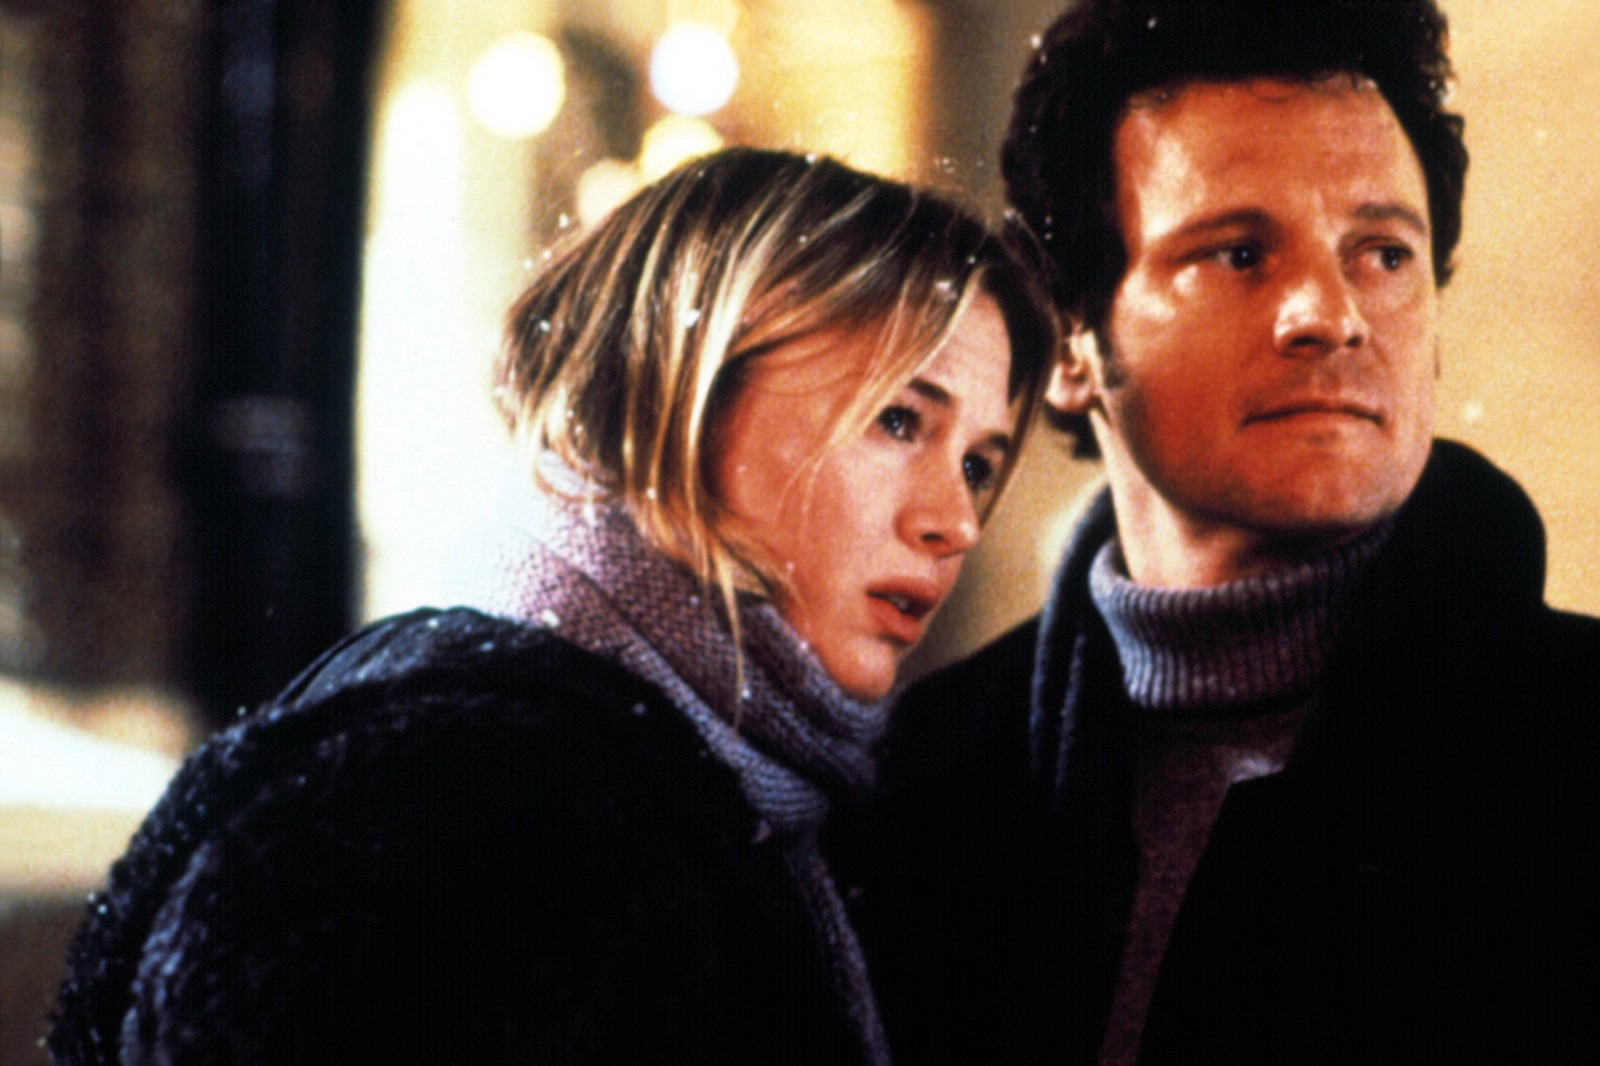 Who was in the movie The Bridget Jones Diary The actor who played the protagonist, and others